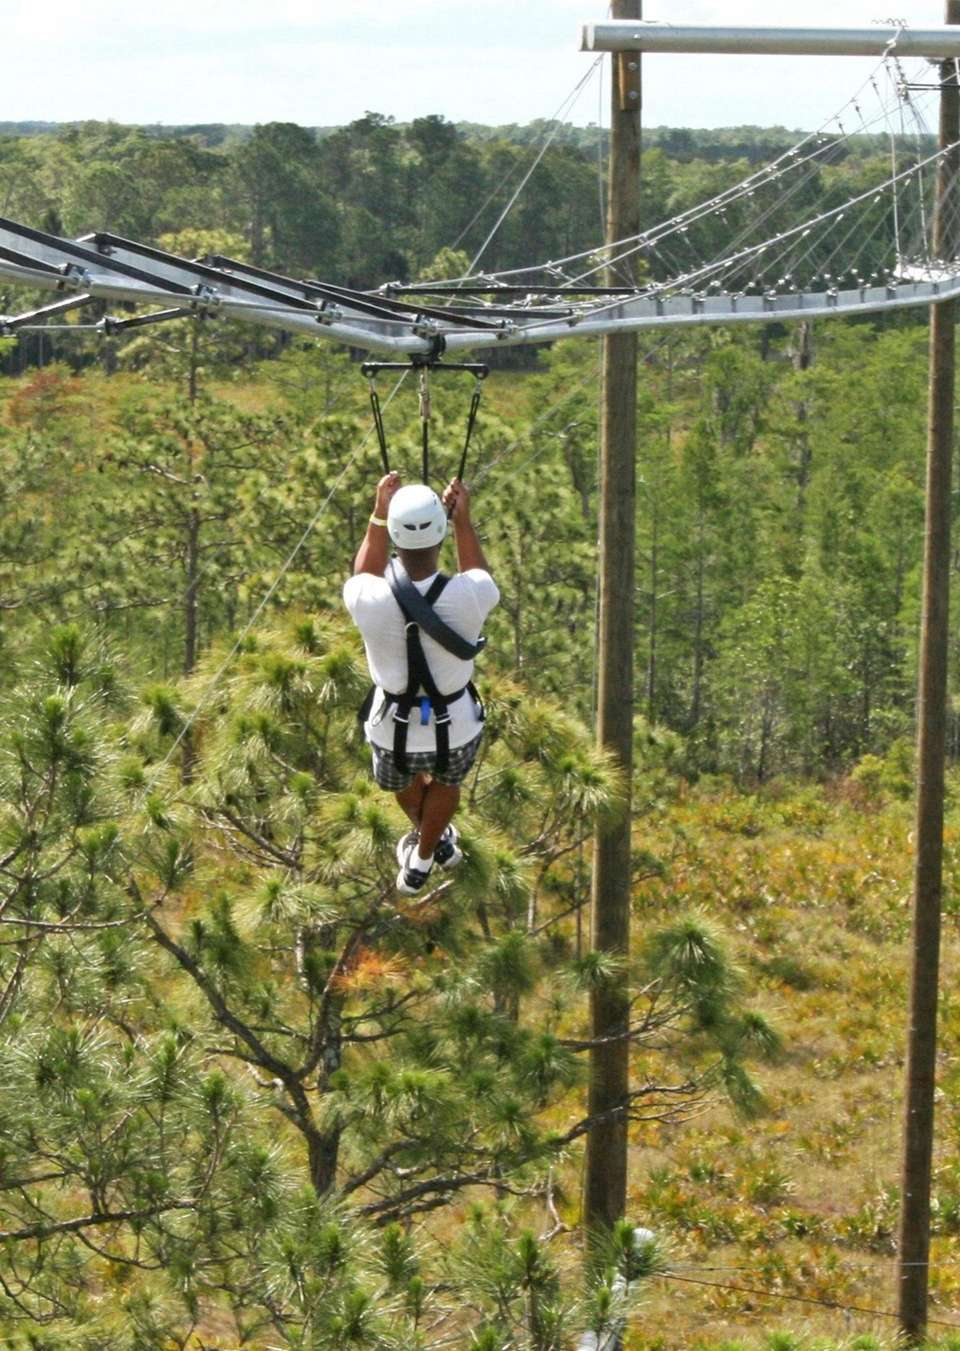 A first-time zip-line rider takes off on the